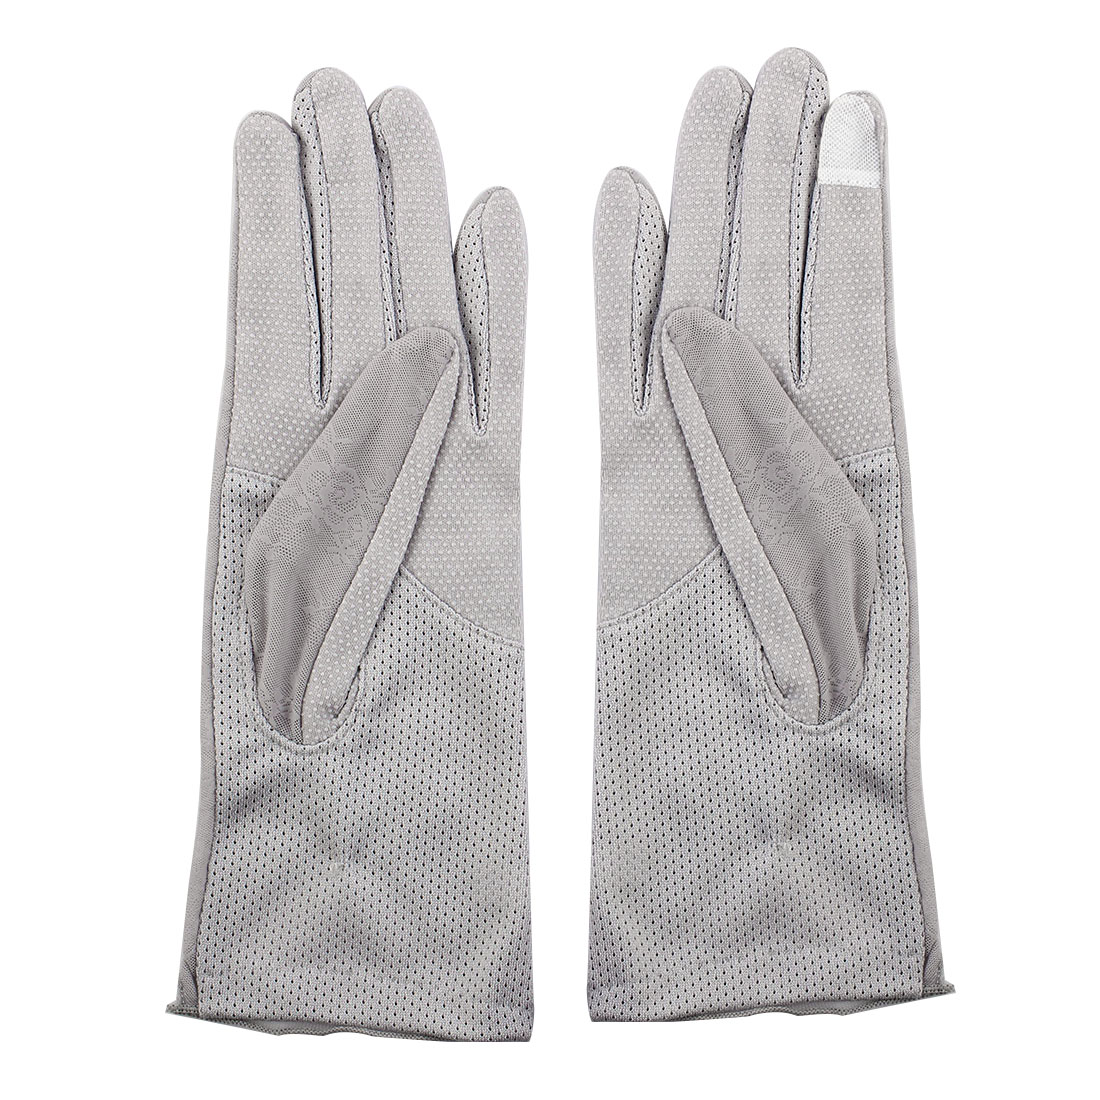 Outdoor Travel Driving Flower Decor Full Finger Non-slip Sun Resistant Gloves Gray Pair for Women Ladies